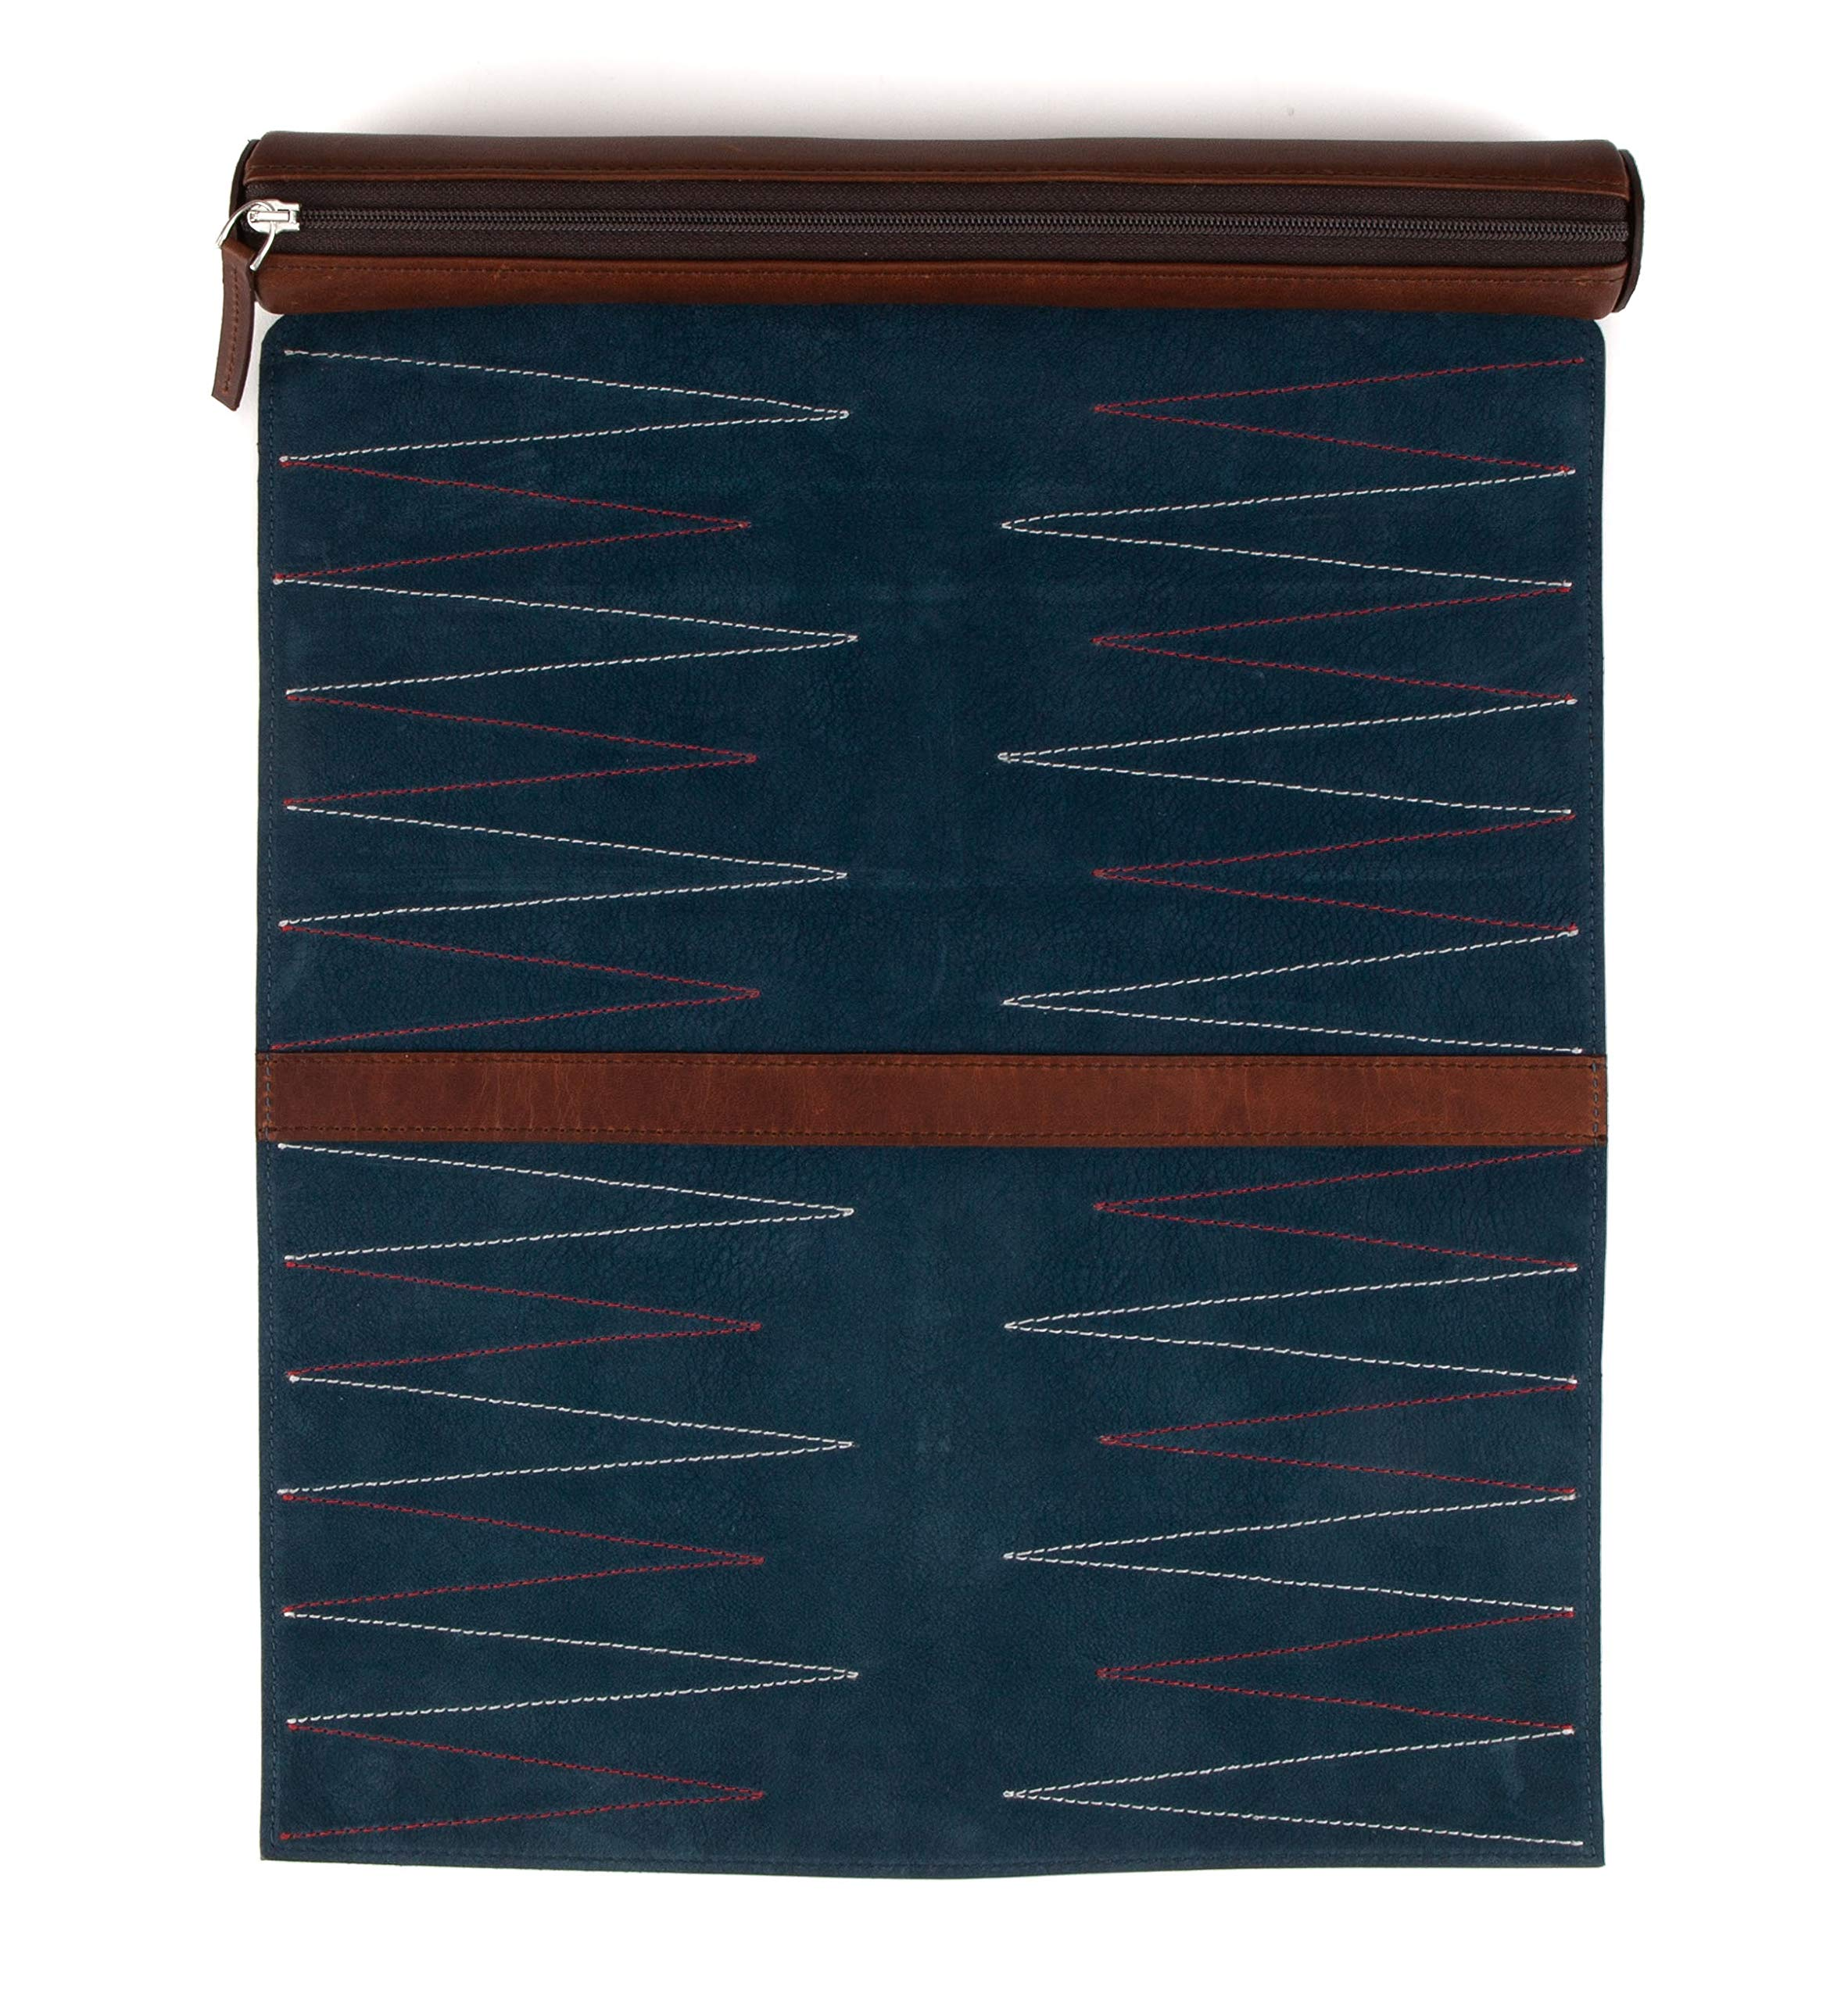 Moore and Giles Luxury Leather Travel Backgammon Set, Baldwin Oak by Moore and Giles (Image #3)